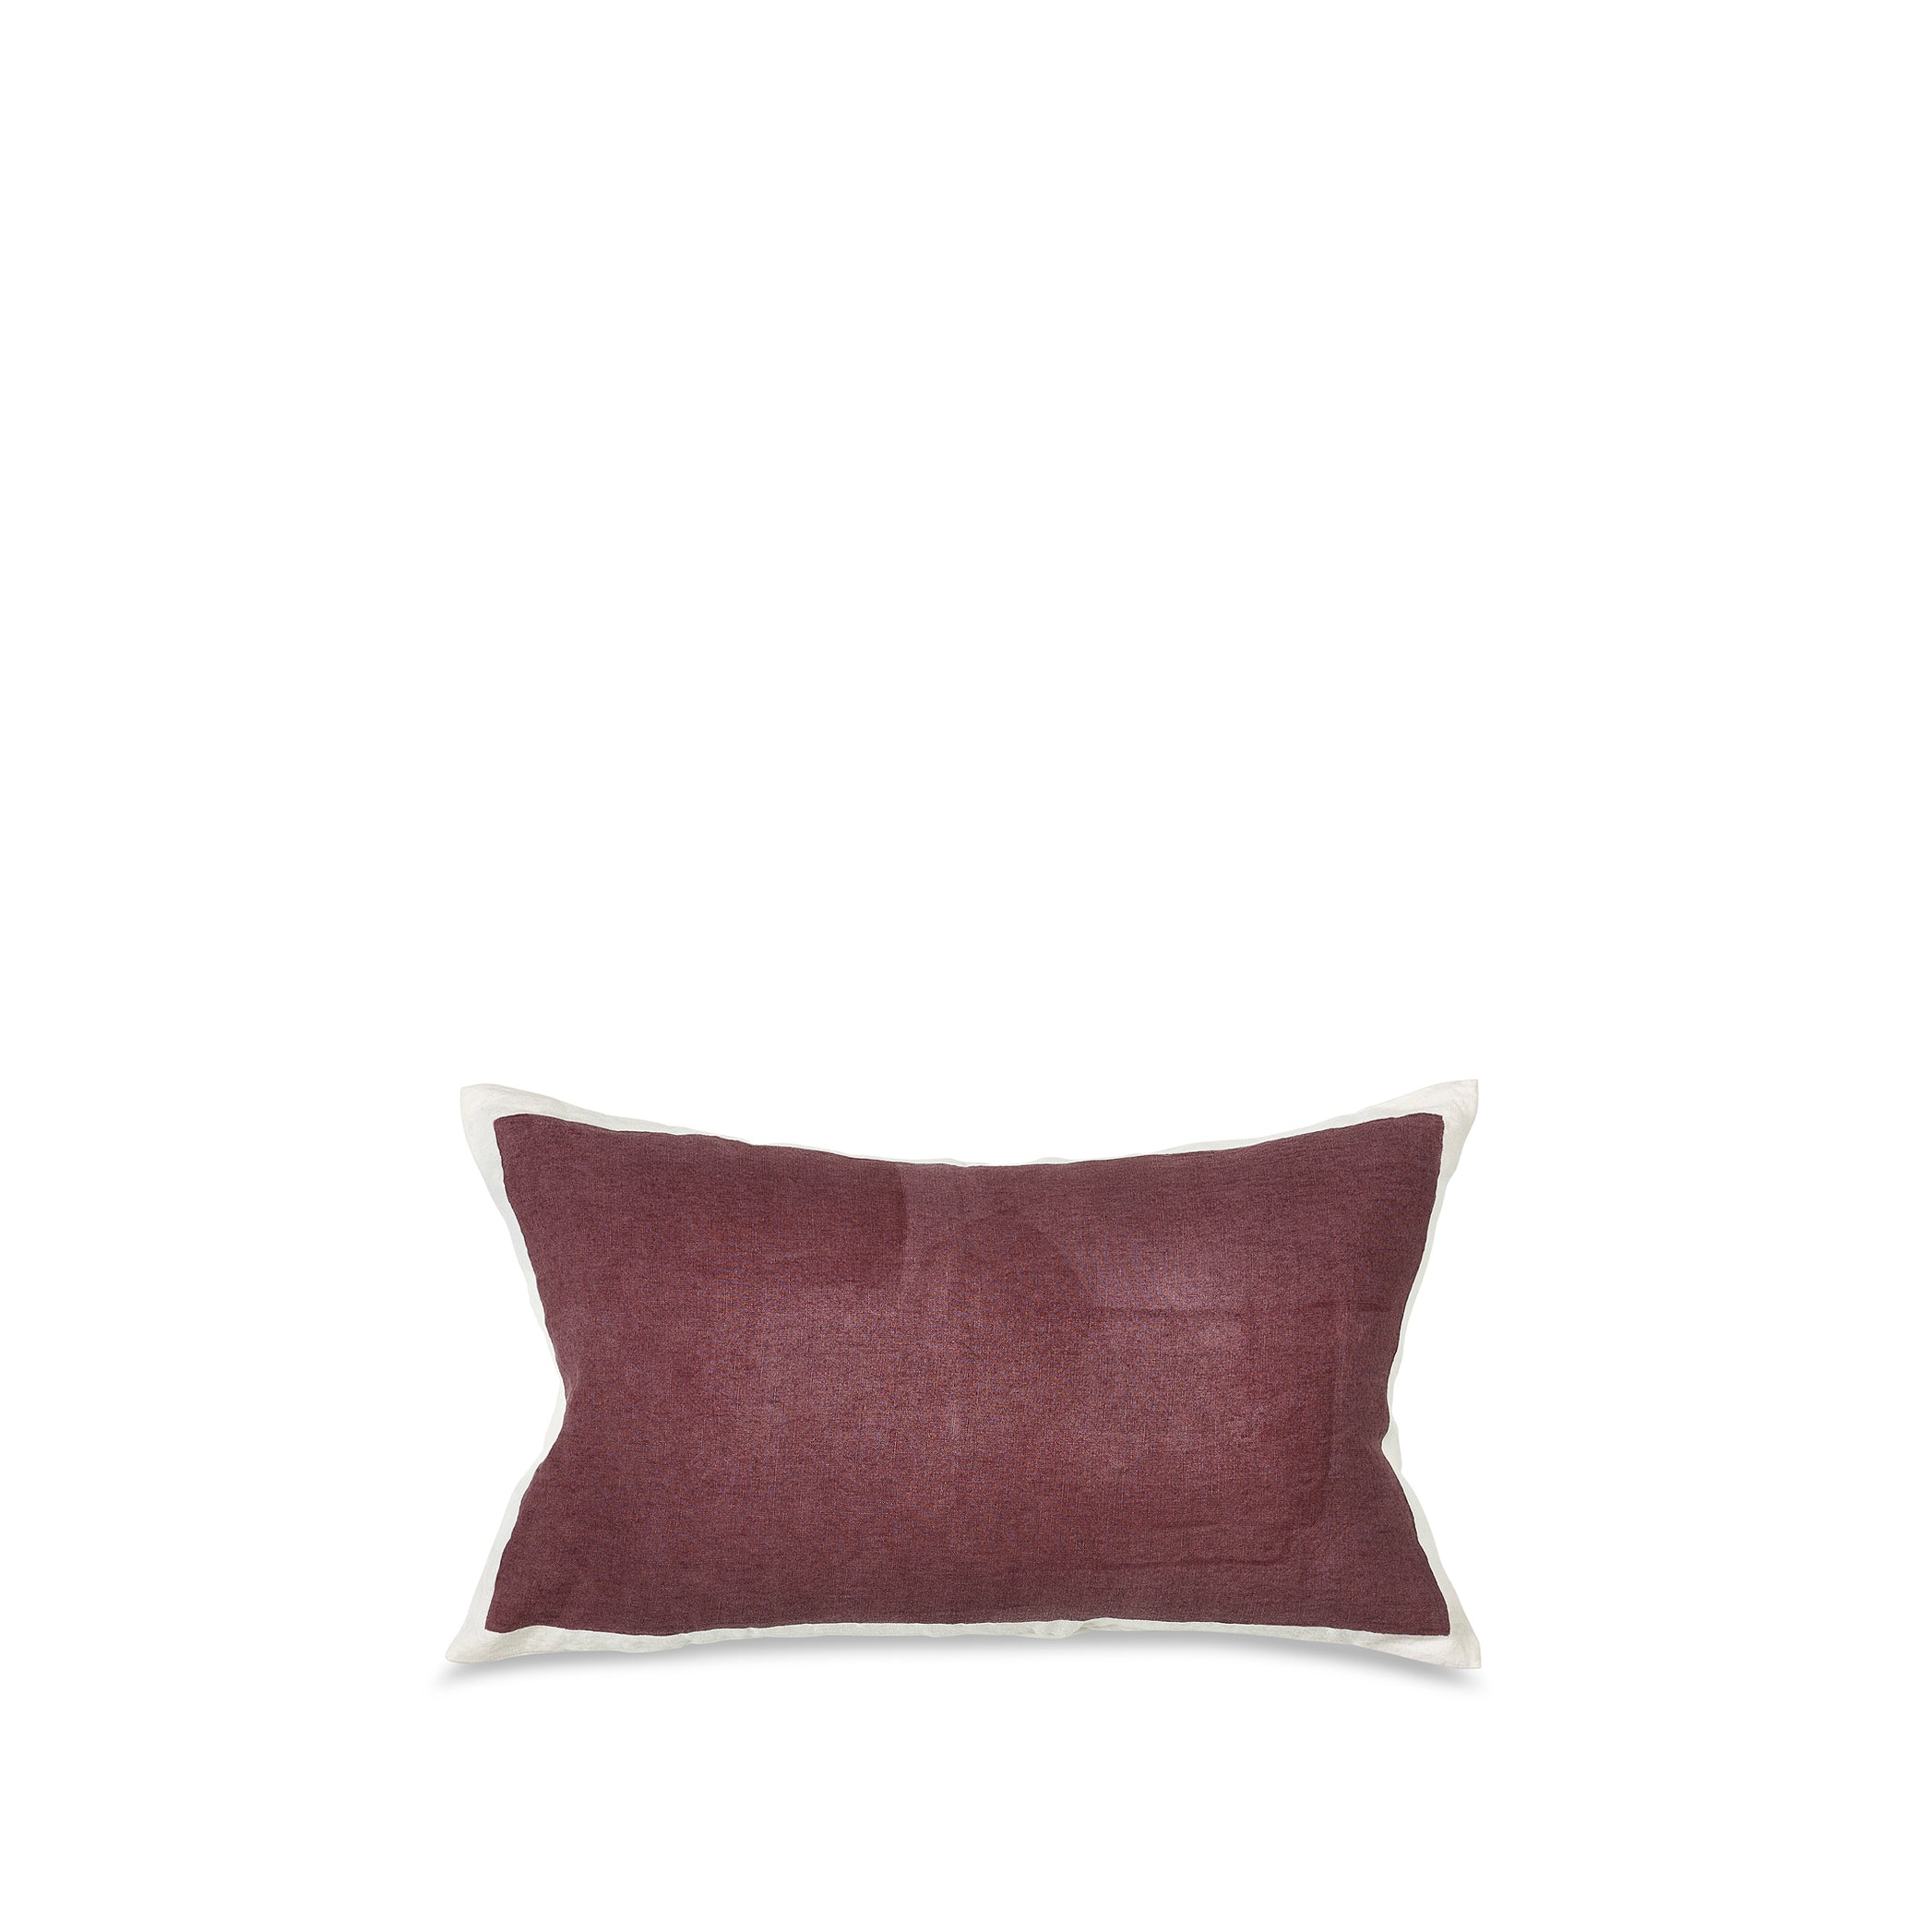 Hand Painted Linen Cushion Cover in Grape, 50cm x 30cm